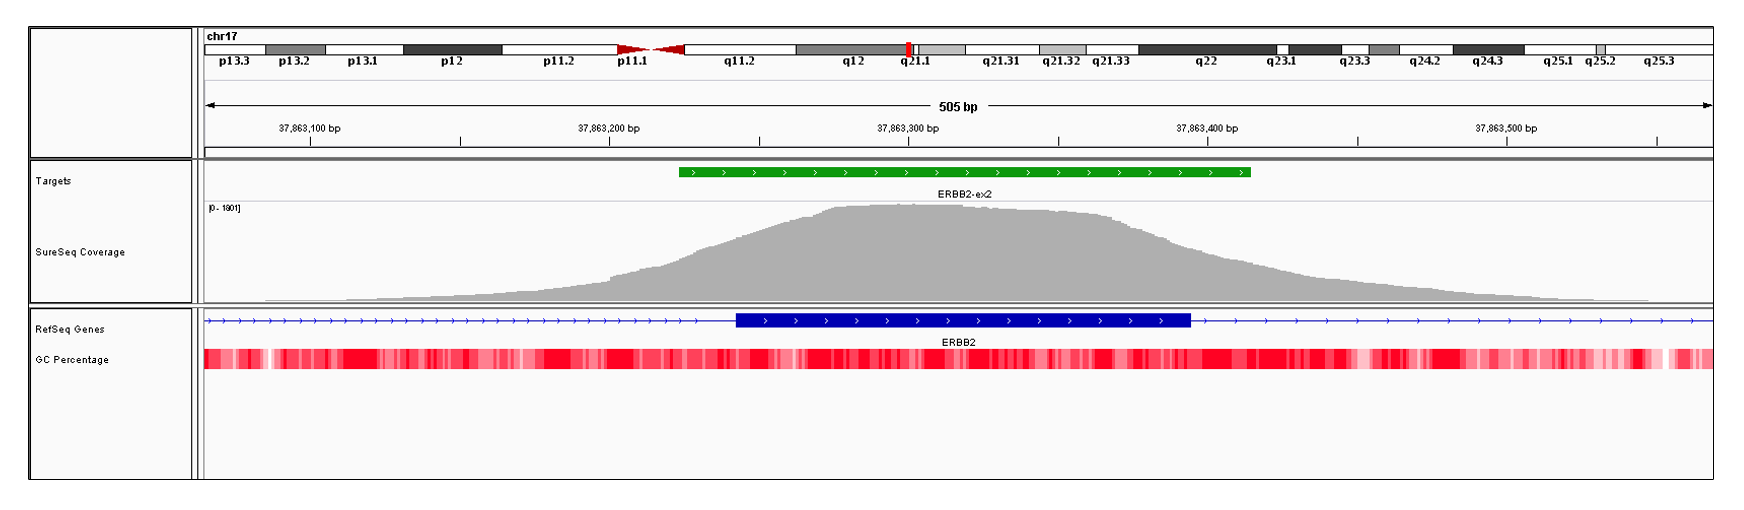 ERBB2 Exon 2 (hg19 chr17:37863243-37863394). Depth of coverage per base (grey). Targeted region (green). Gene coding region as defined by RefSeq (blue). GC percentage (red). Image